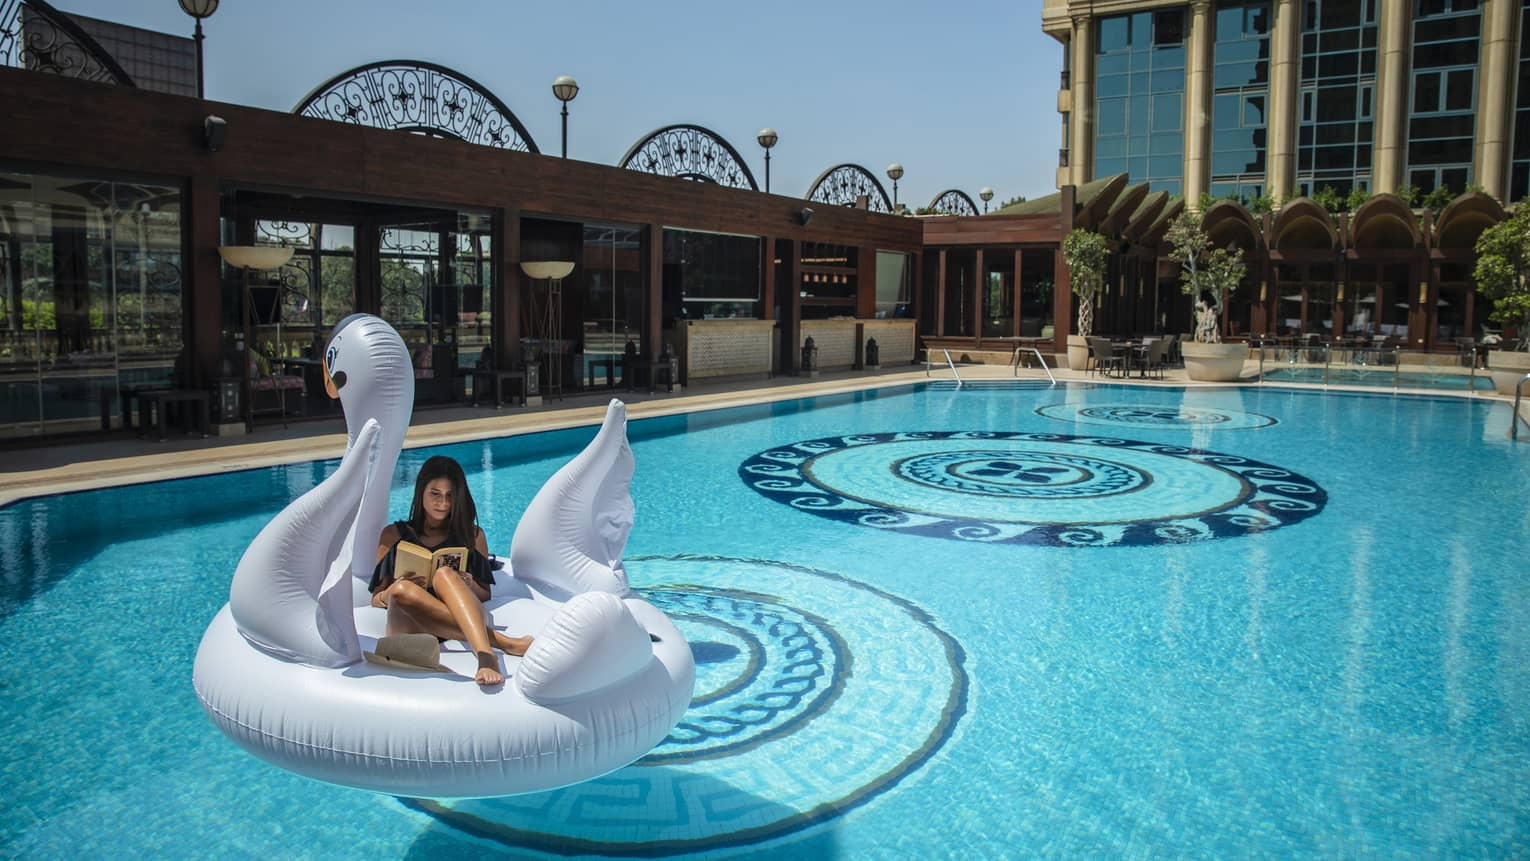 A woman reads a book while floating on a large inflatable swan at the book